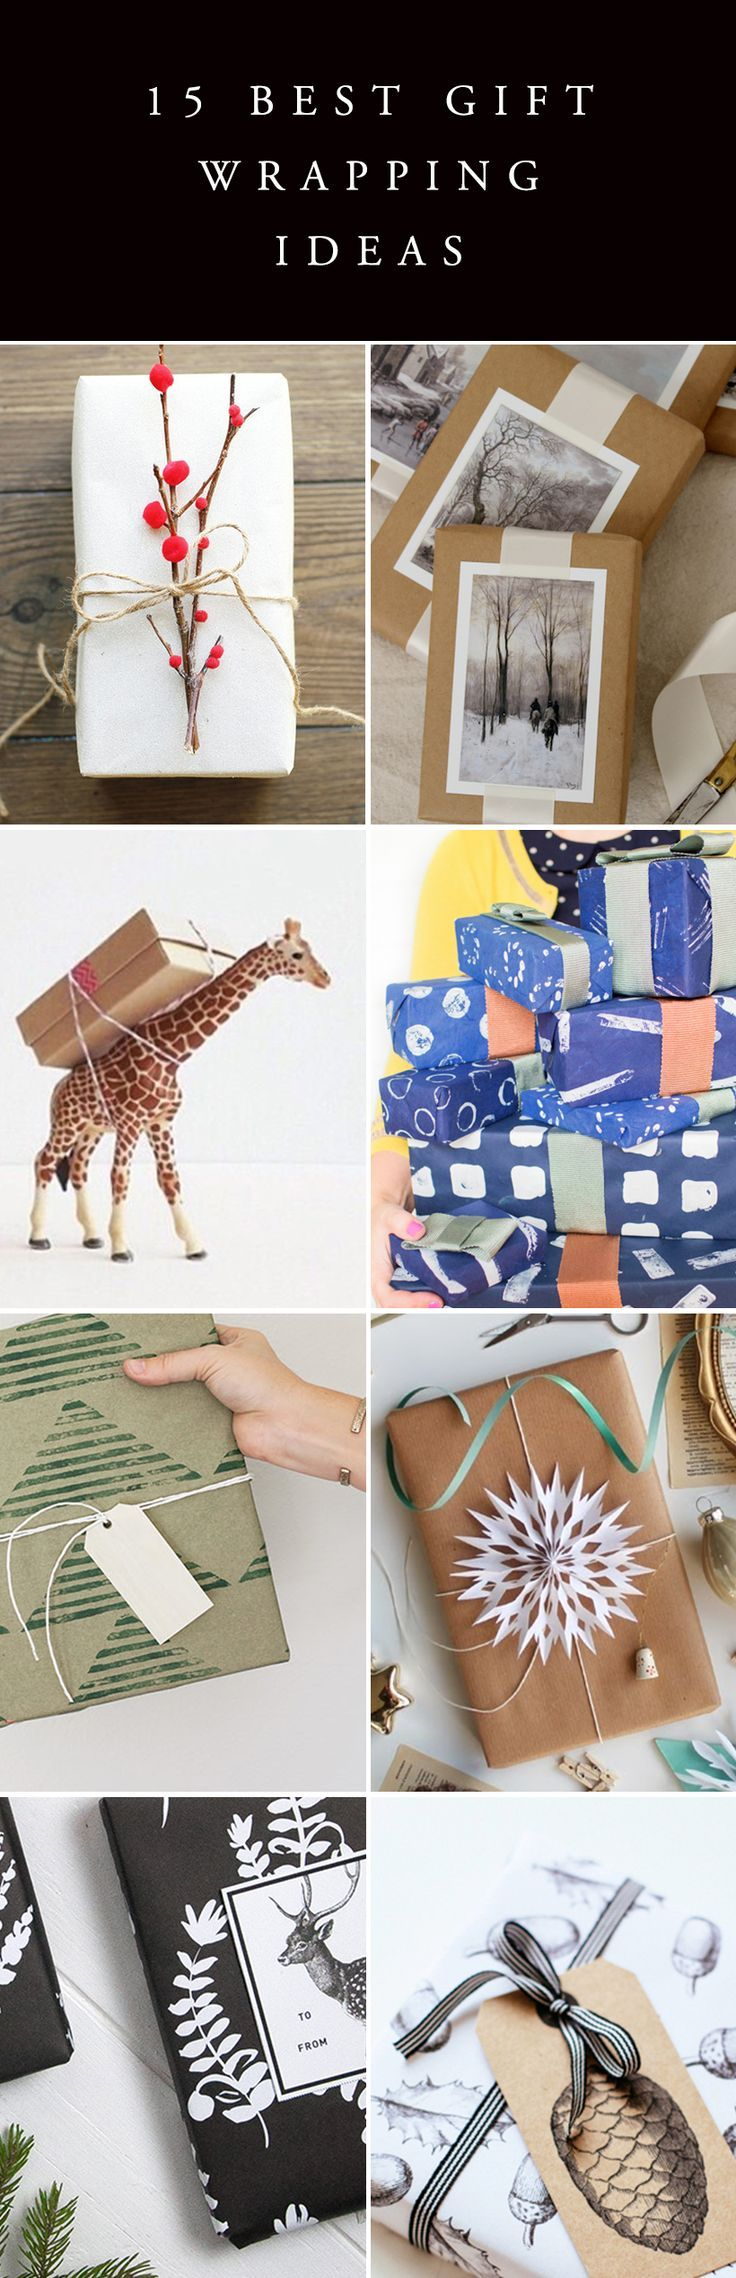 Lots of lovely simple ideas to make gift wrapping that extra bit special. I really love using brown kraft paper, so versatile. www.janetscardsonline.co.uk